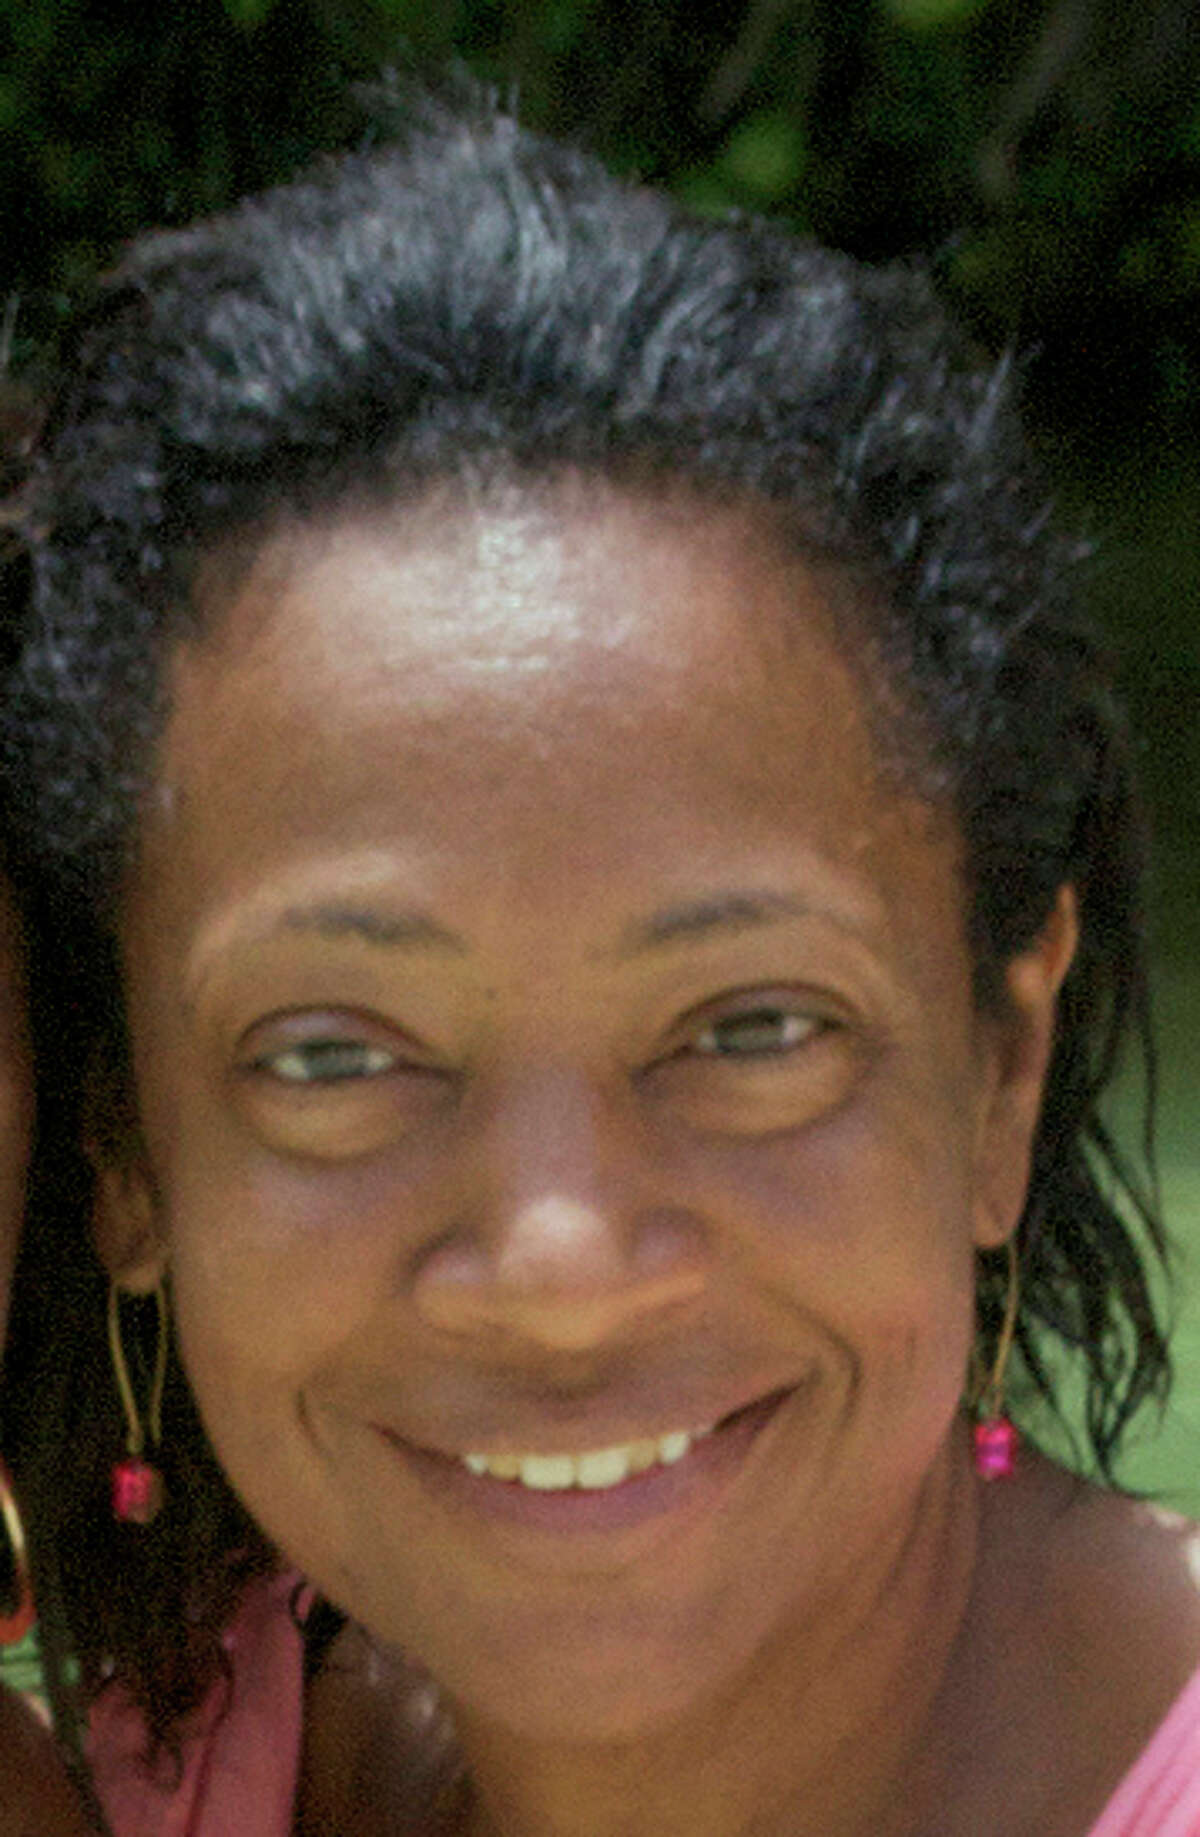 Sandra Coke, 50, of Oakland worked for the Office of the Federal Defender in Sacramento.